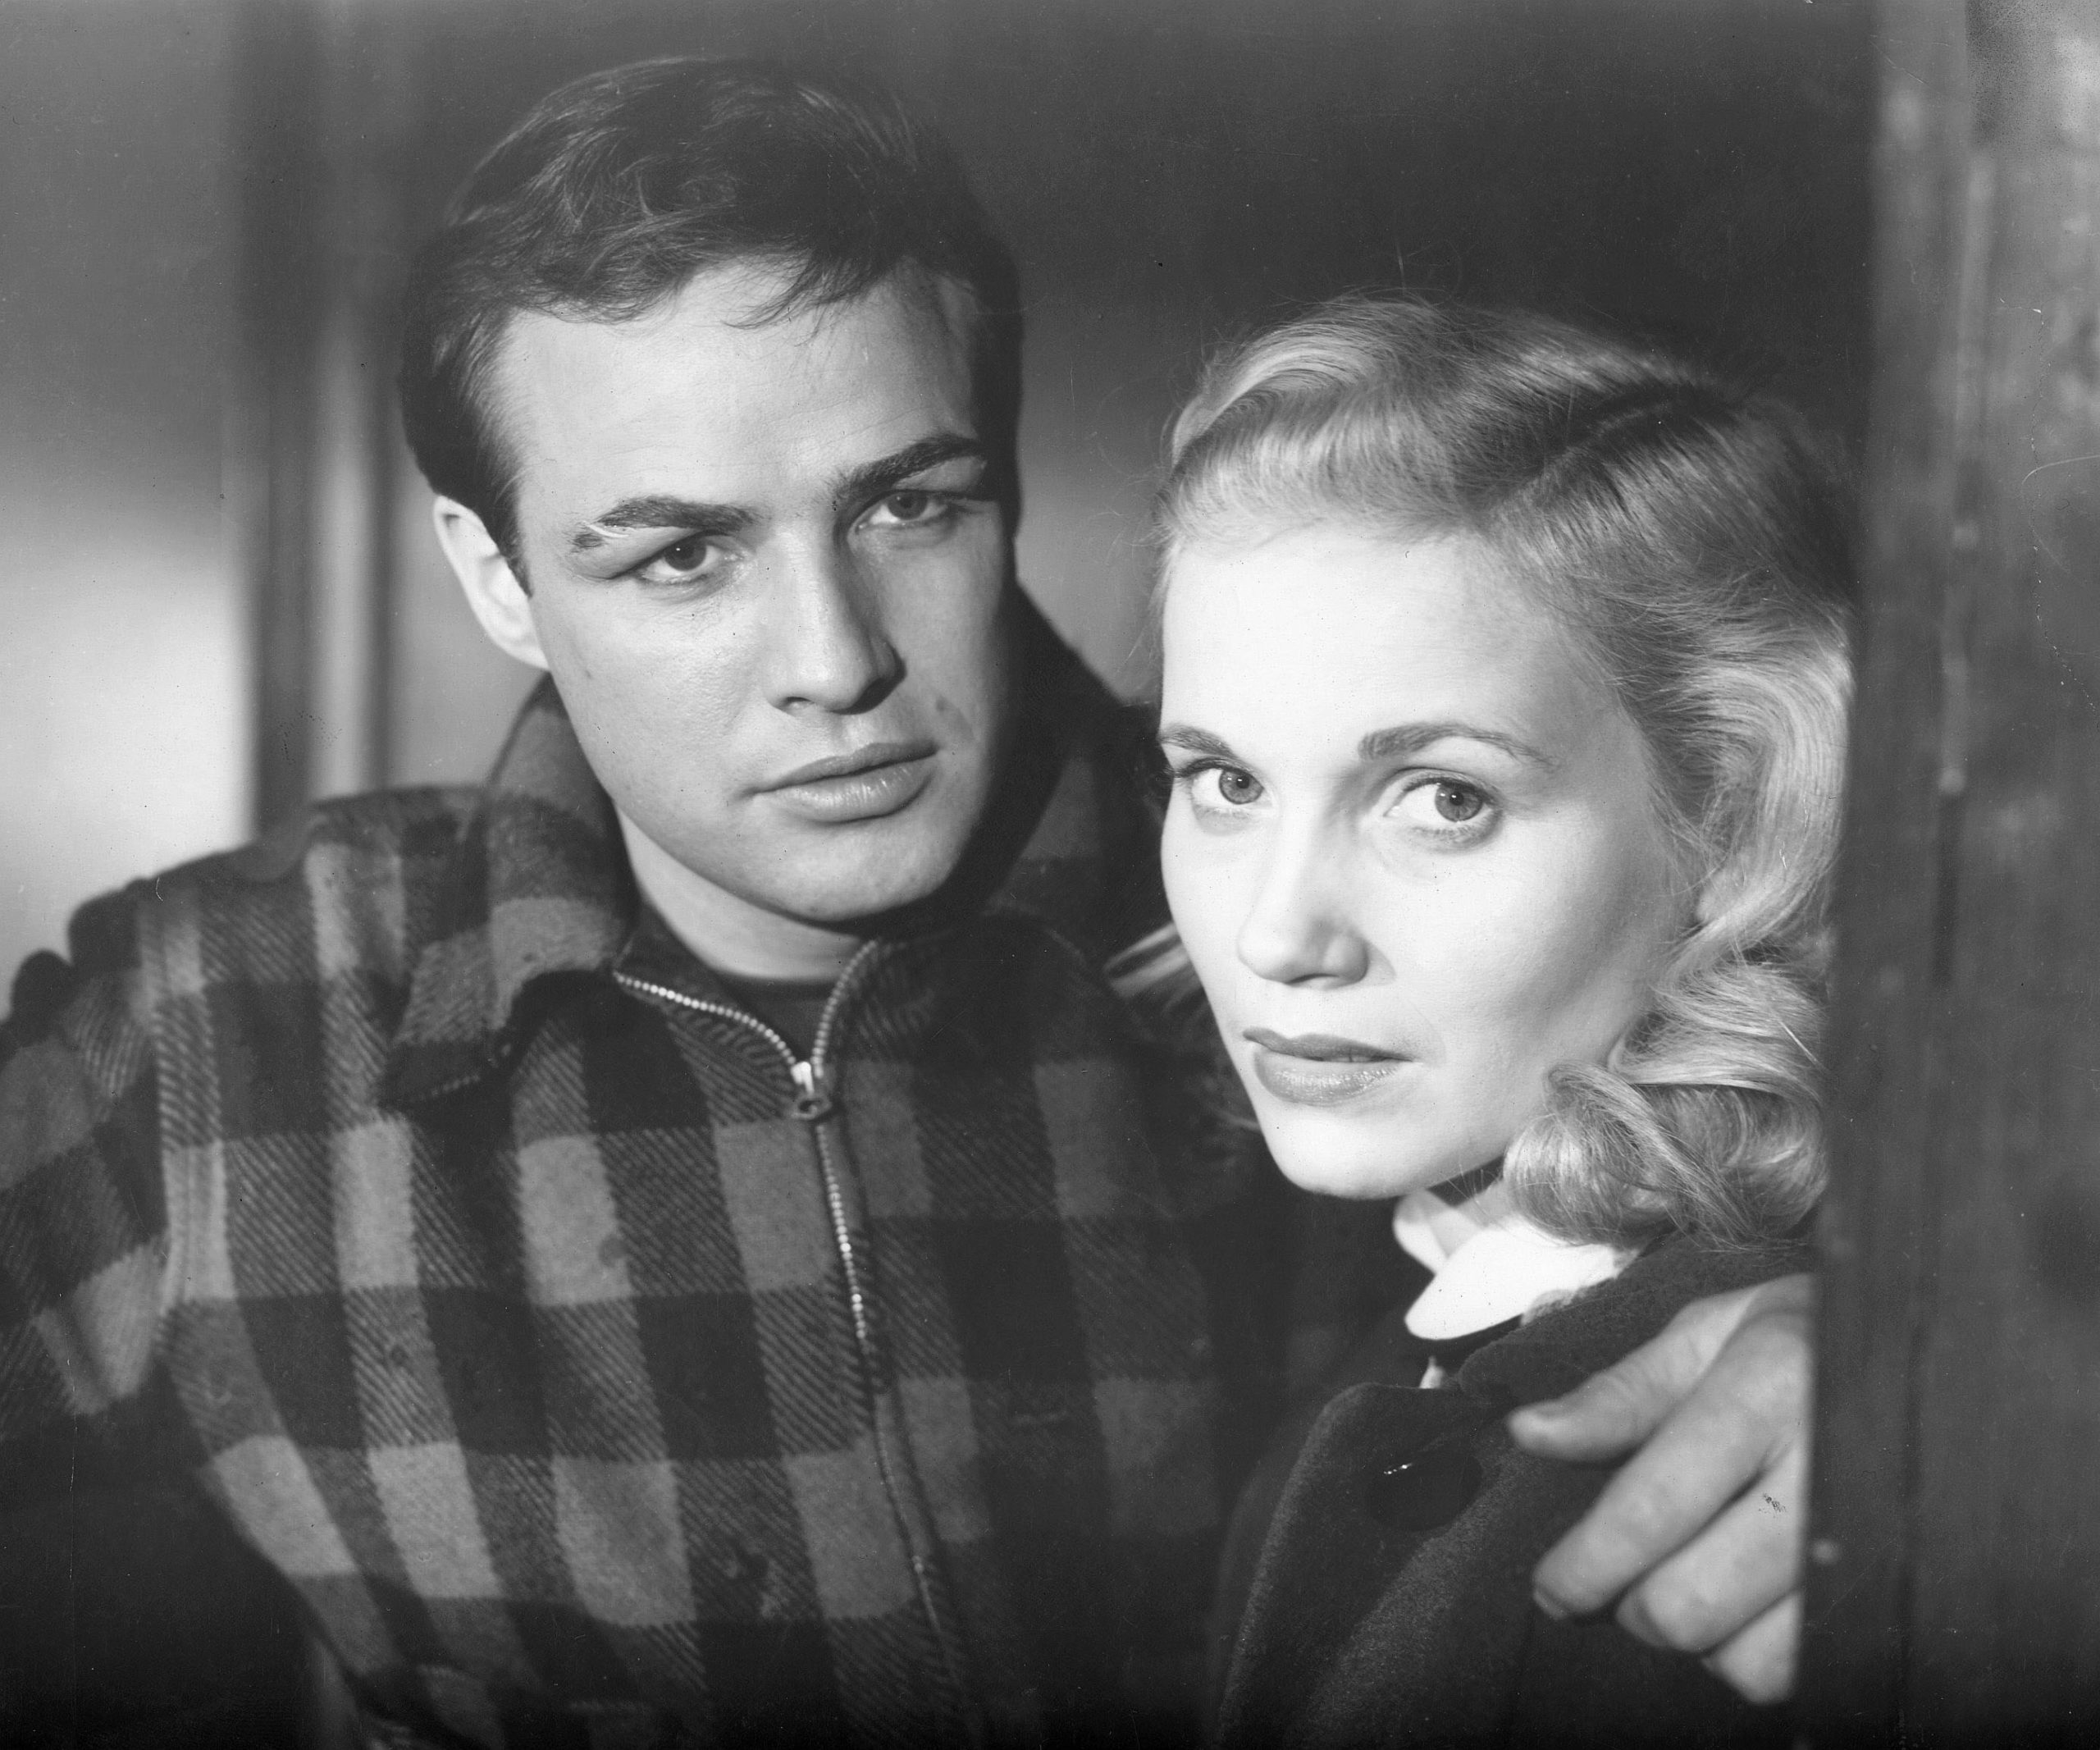 Marlon Brando and Eva Marie Saint in a scene from On The Waterfront